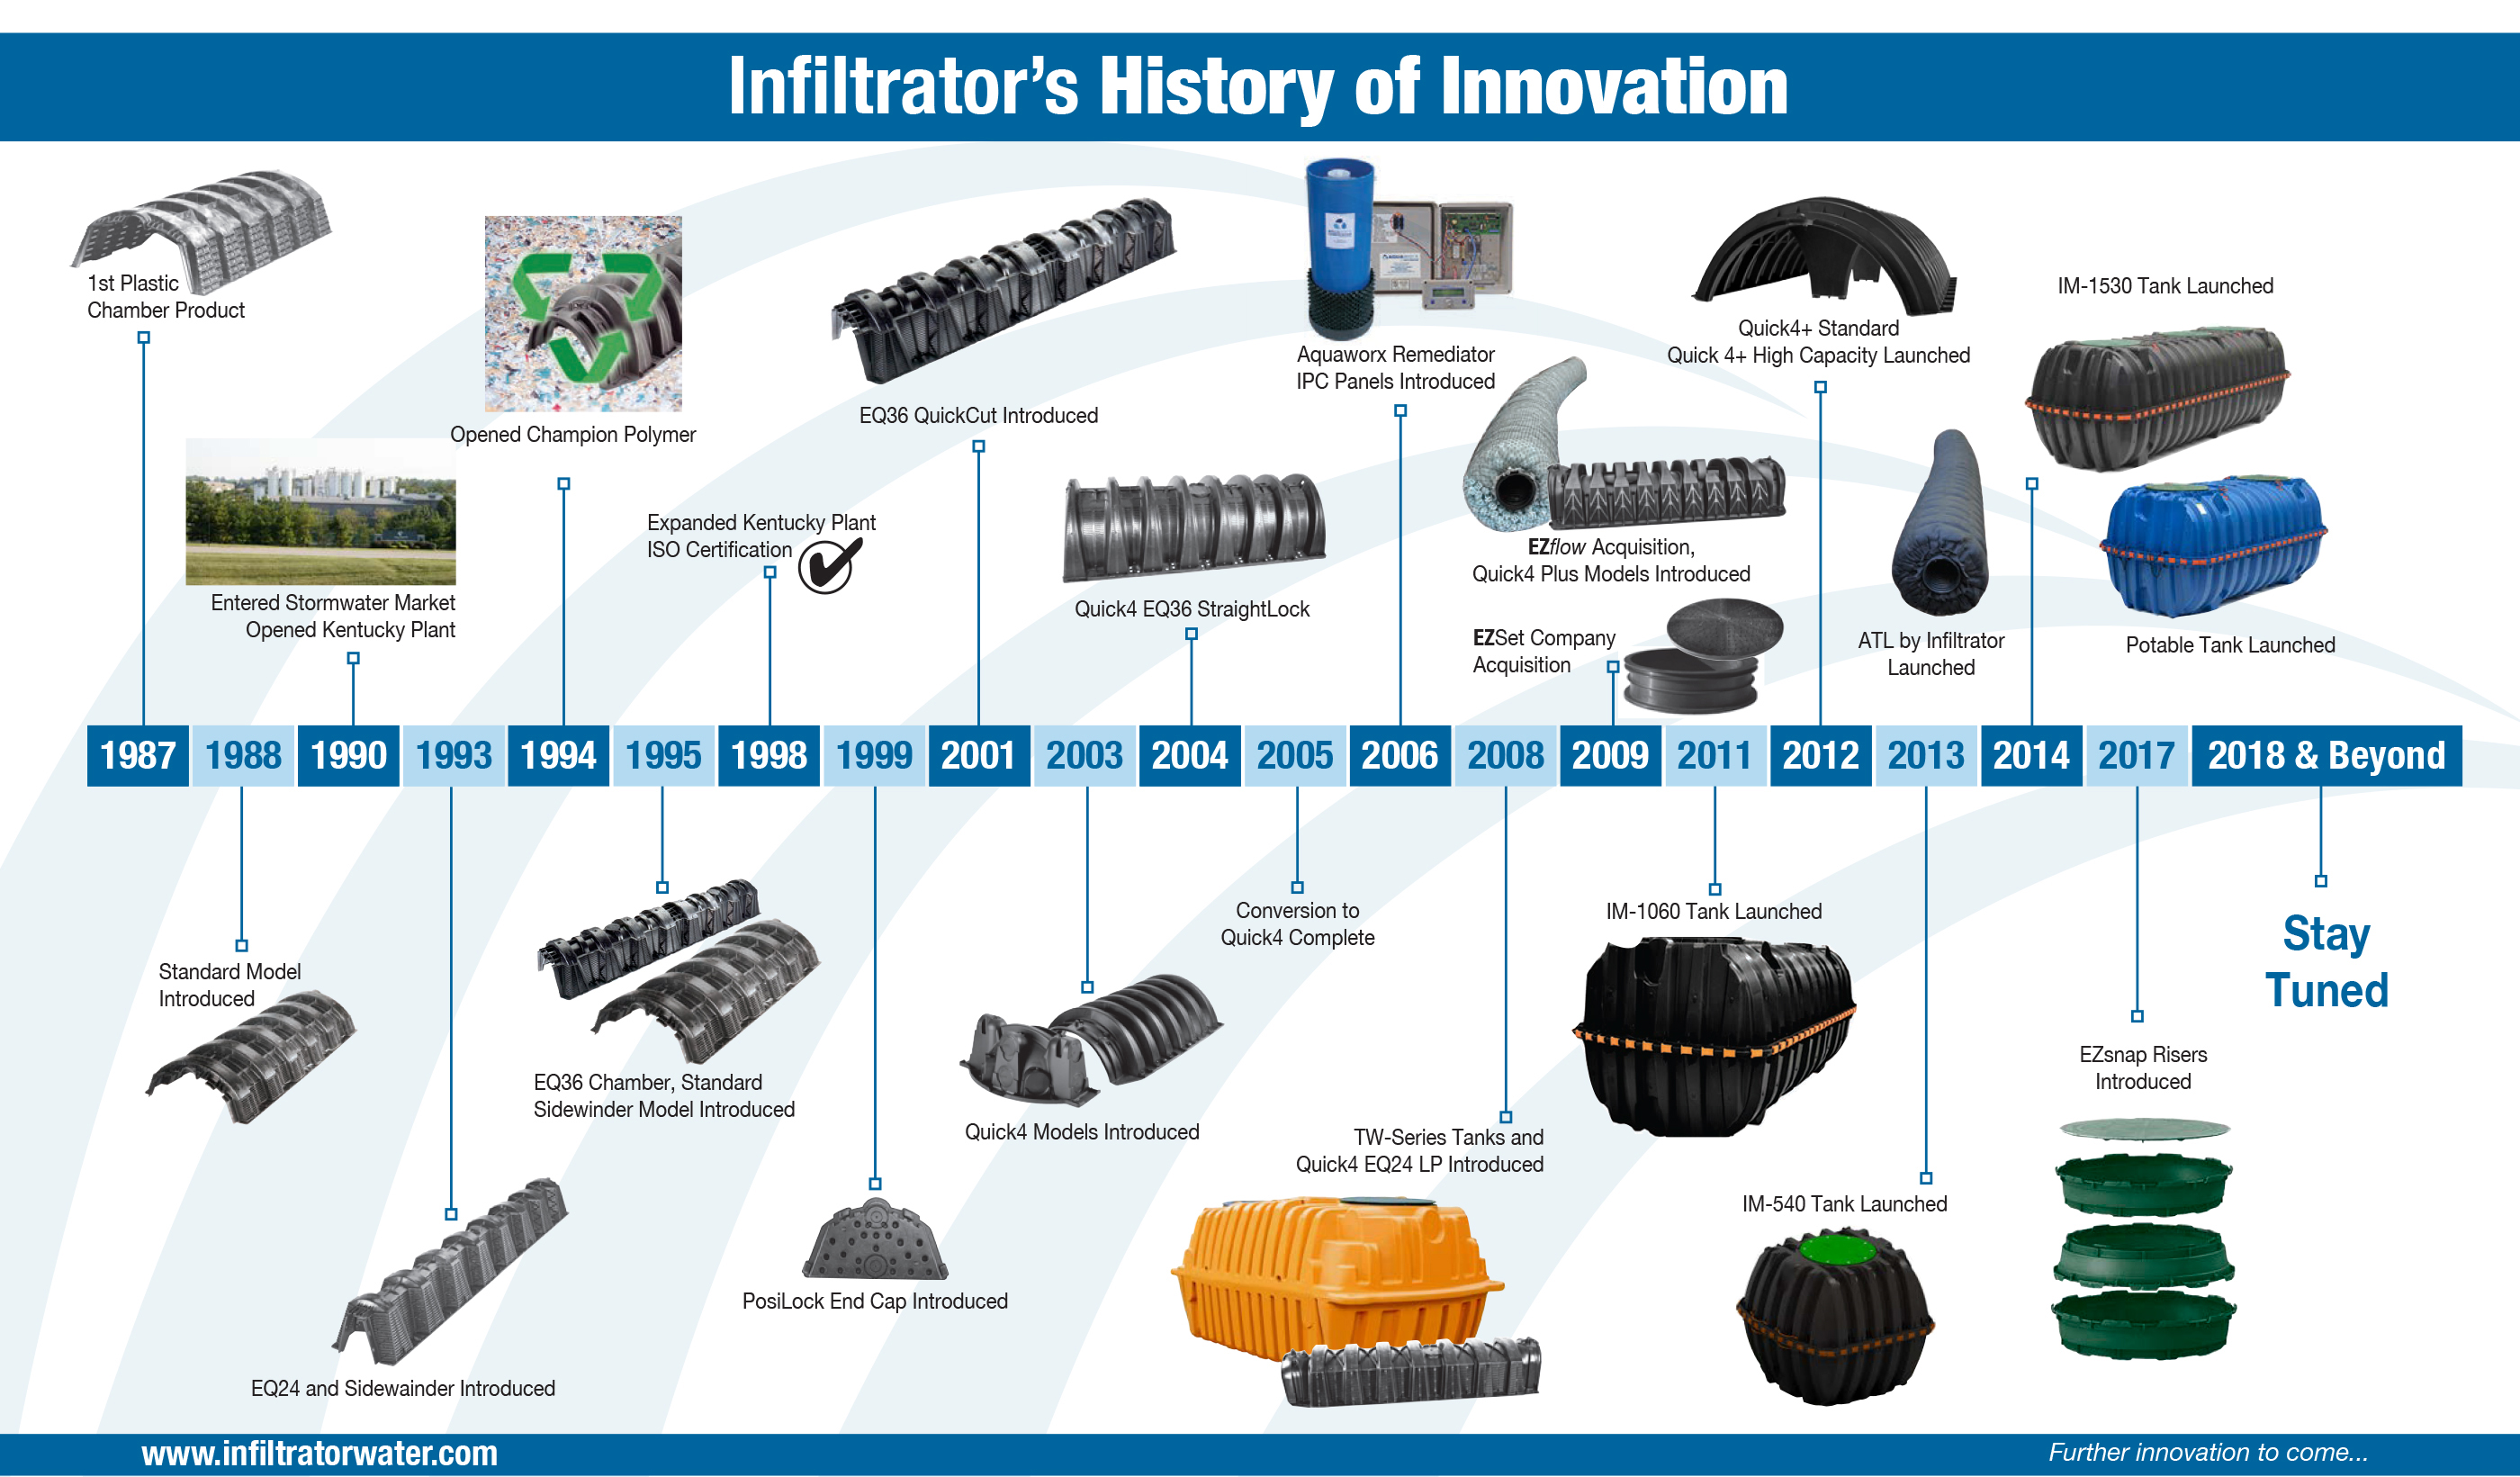 Infiltrator's History of Innovation